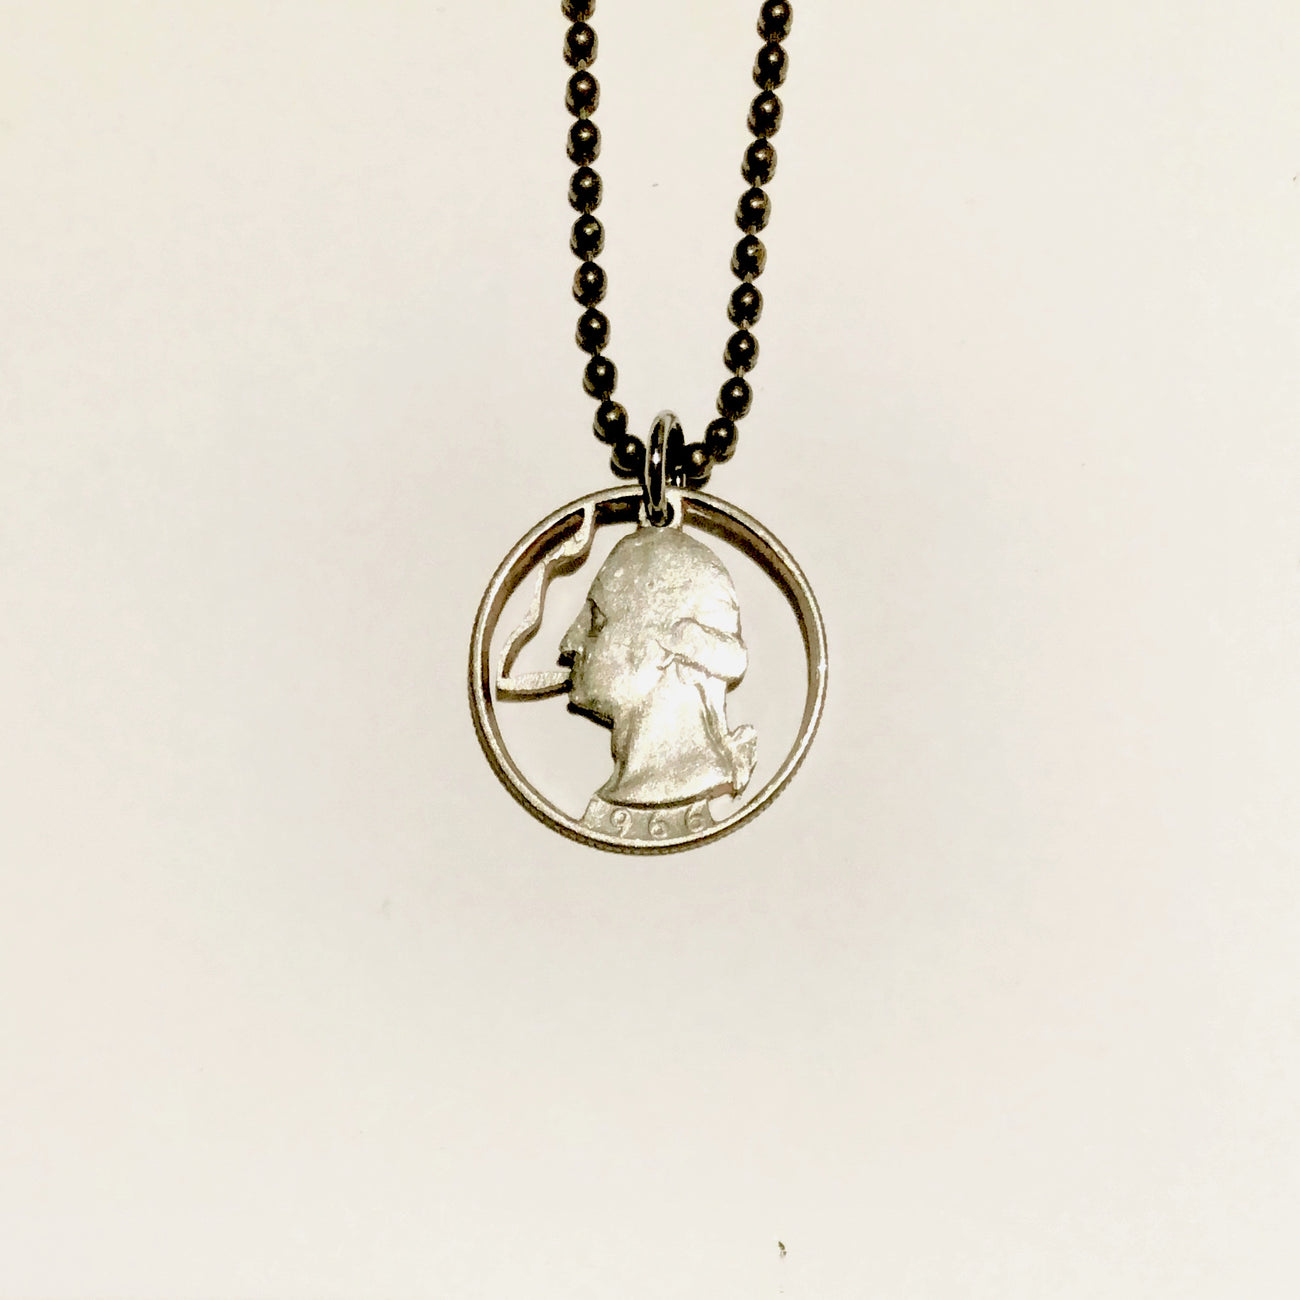 A TSY Hand-Cut Smokin' George Washington Coin Pendant Necklace, Jewelry, NEW!